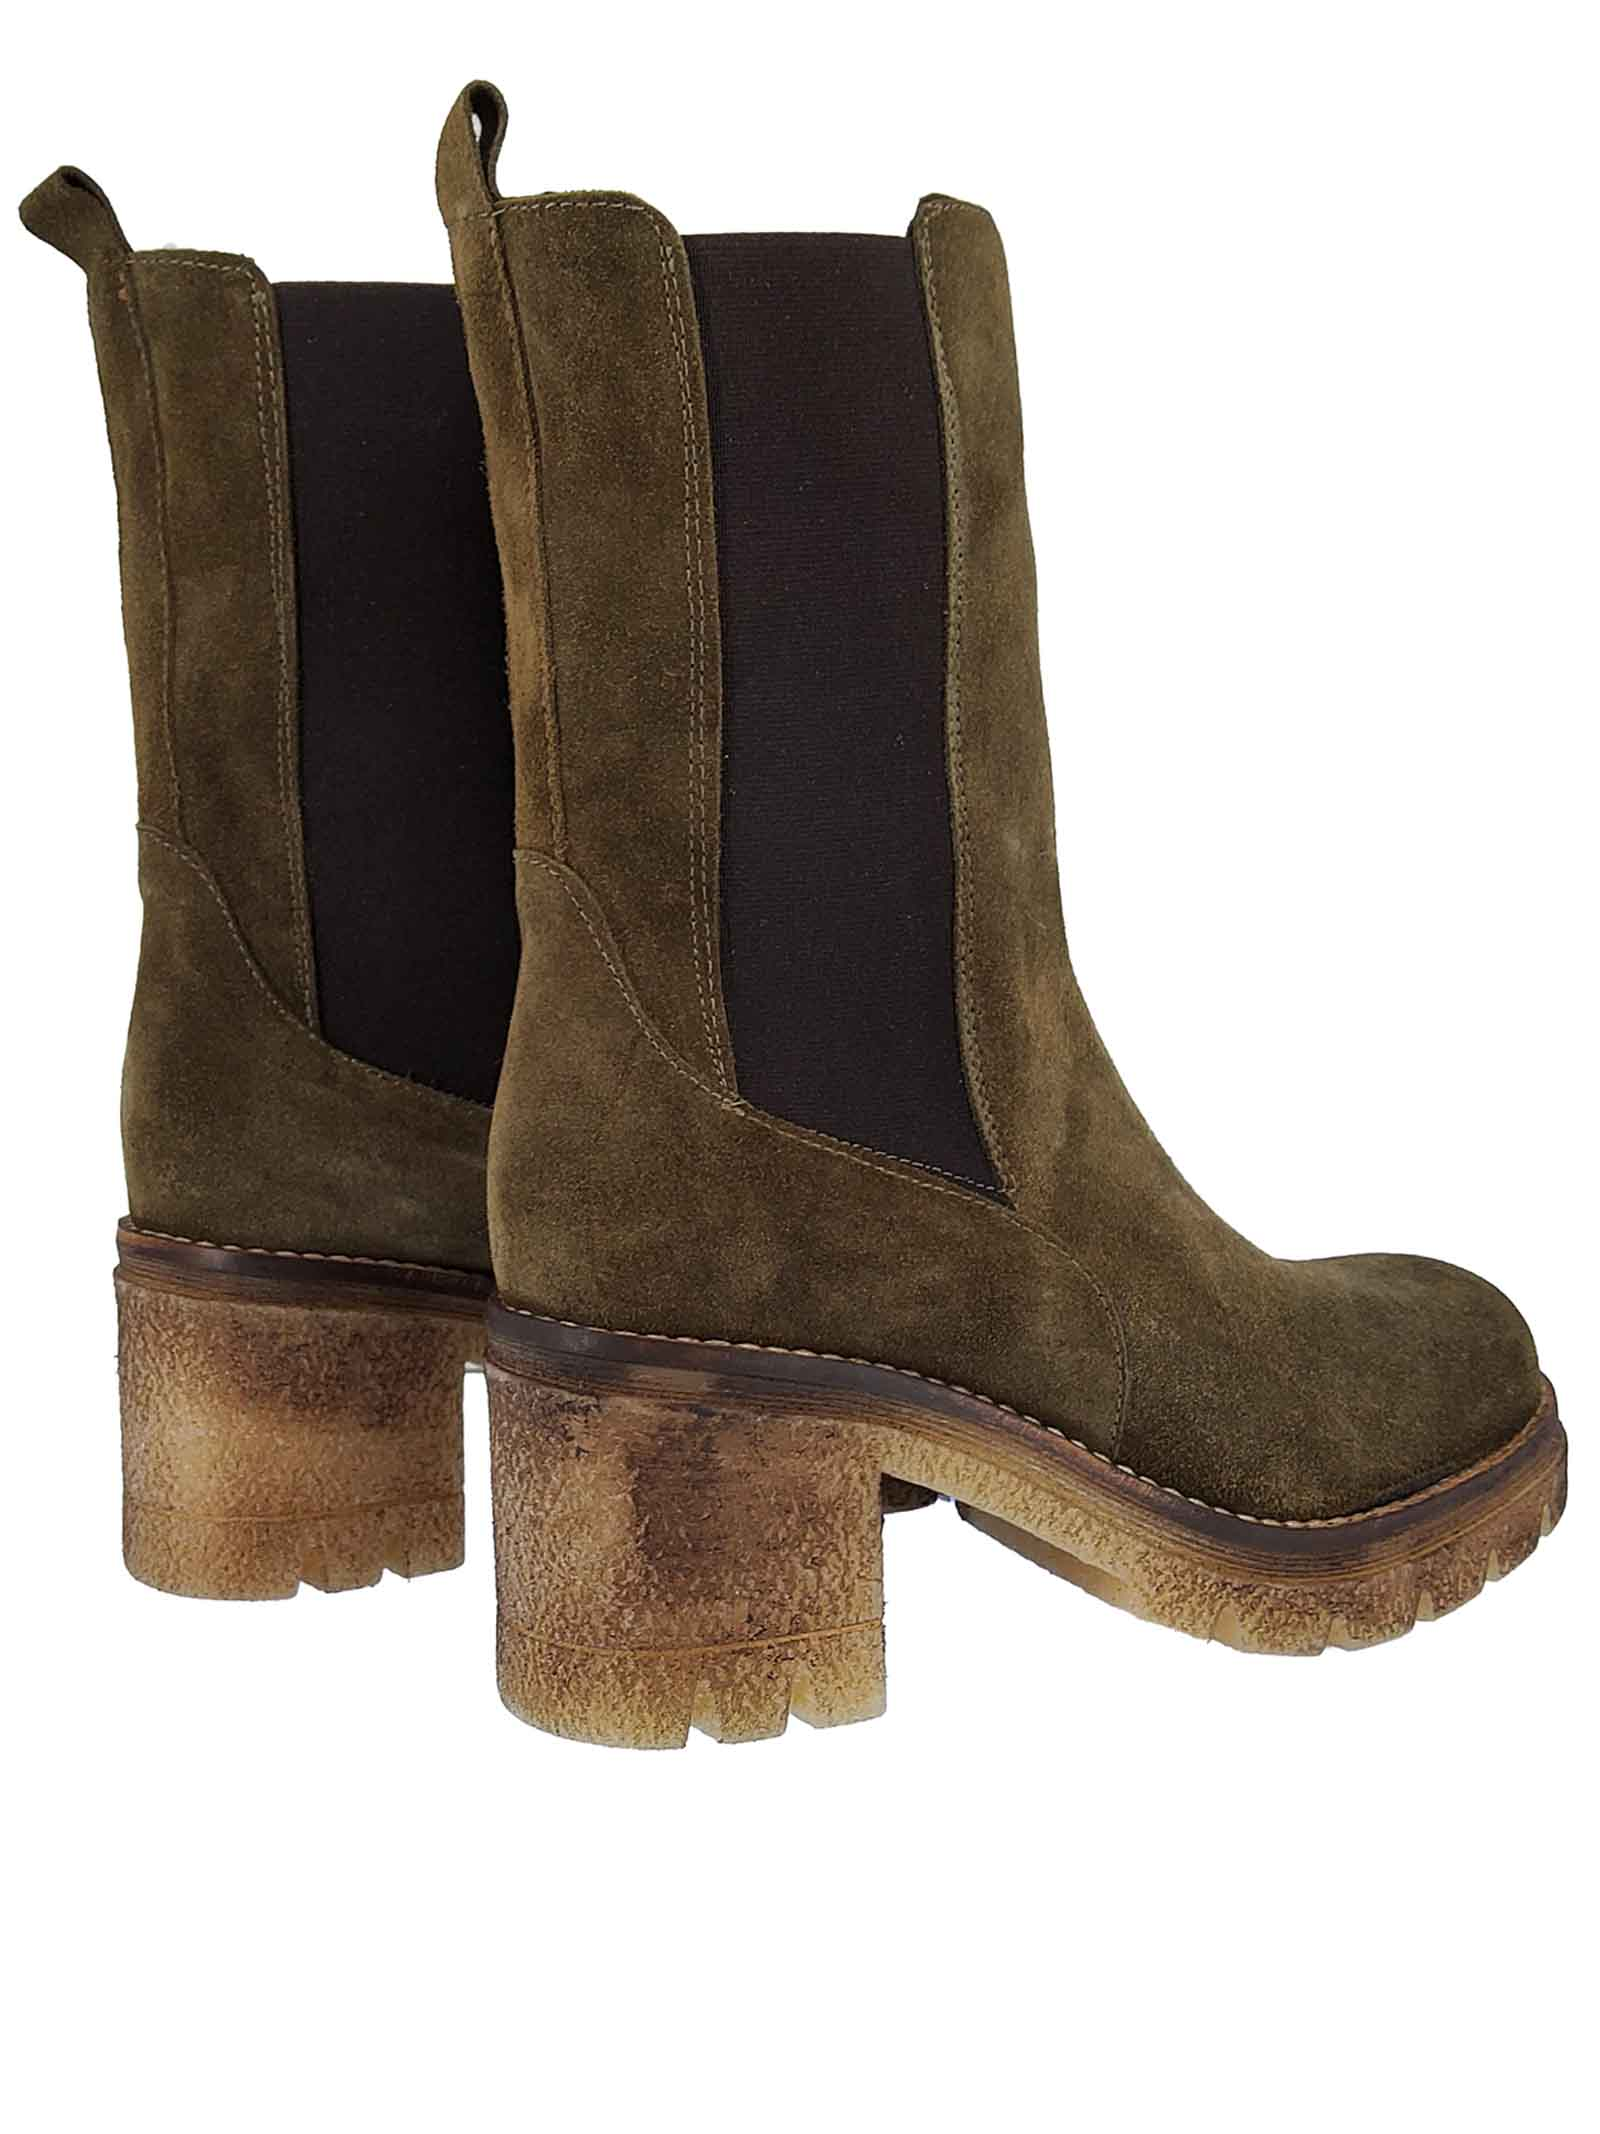 Women's Chelsea Boot in Green Suede with Matching Side Elastics and Para Sole Spatarella | Ankle Boots | Q3005